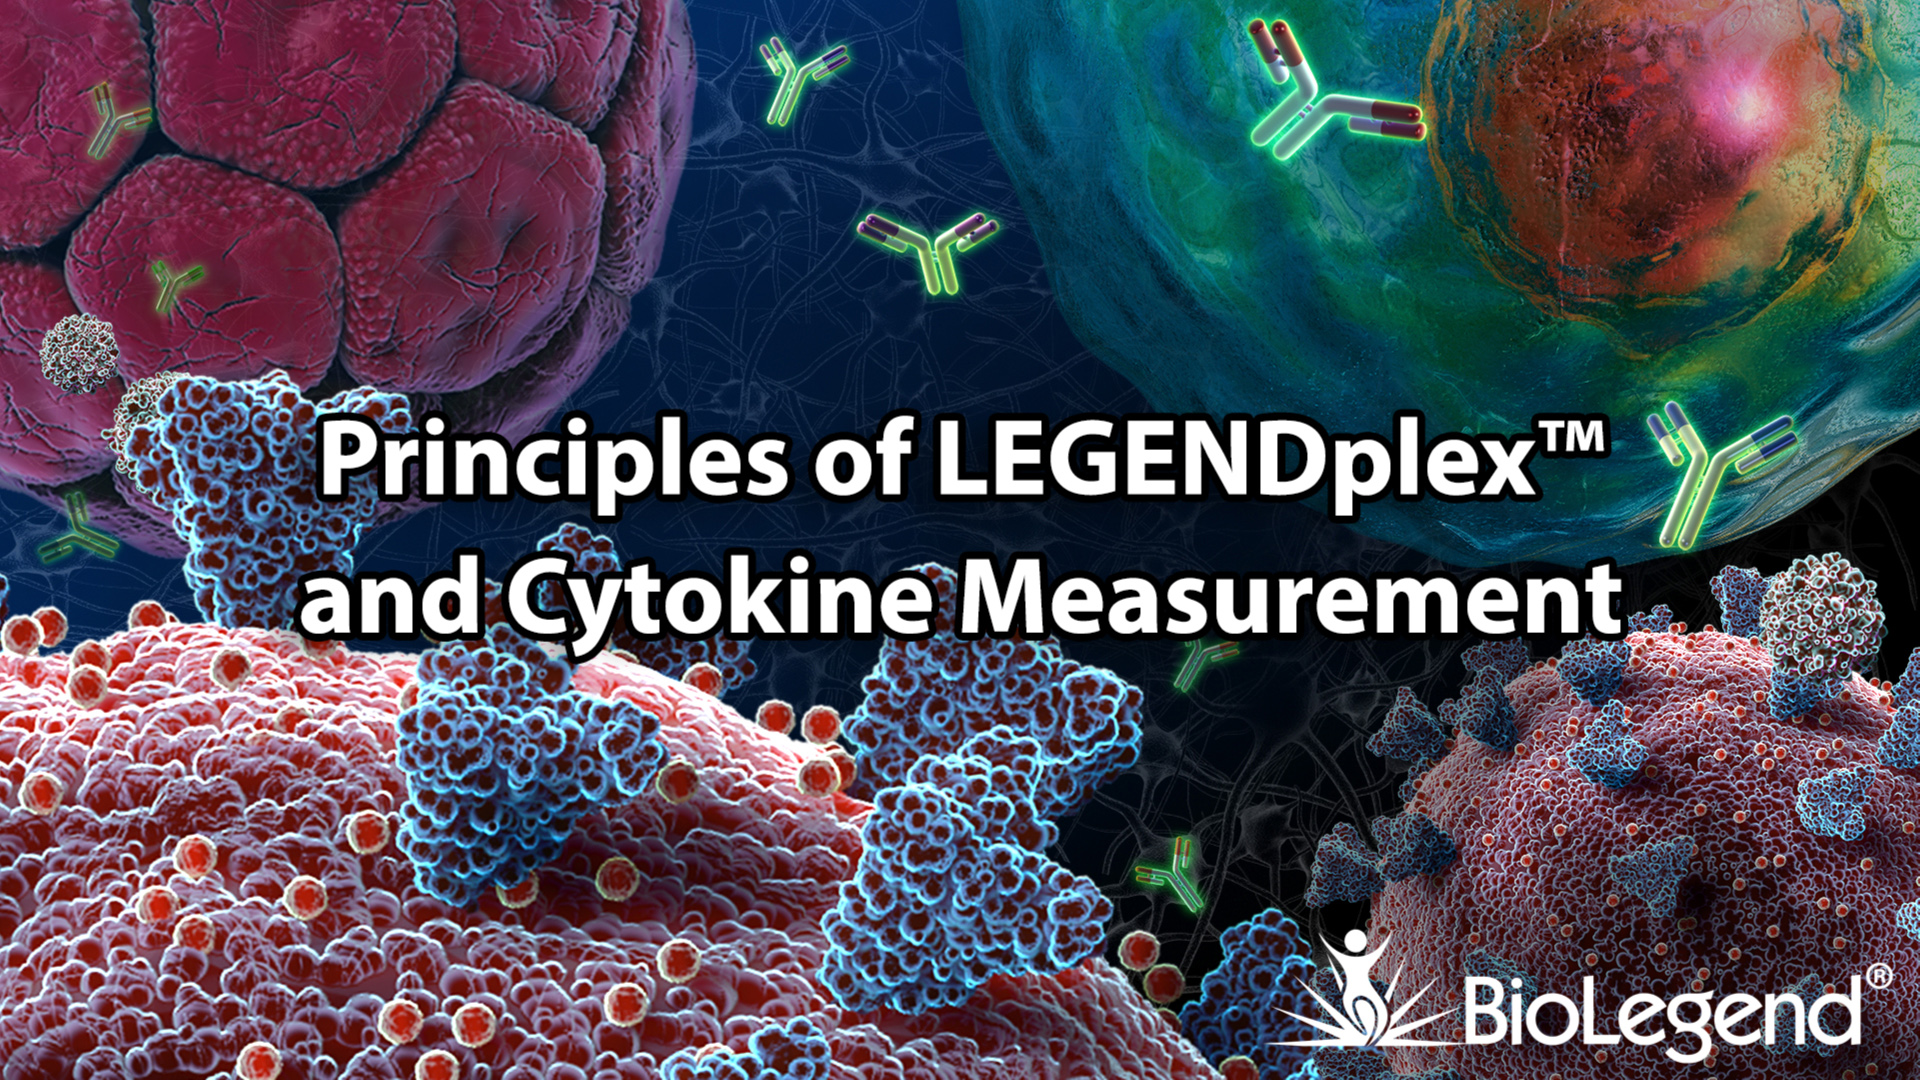 Principles of LEGENDplex and Cytokine Measurement